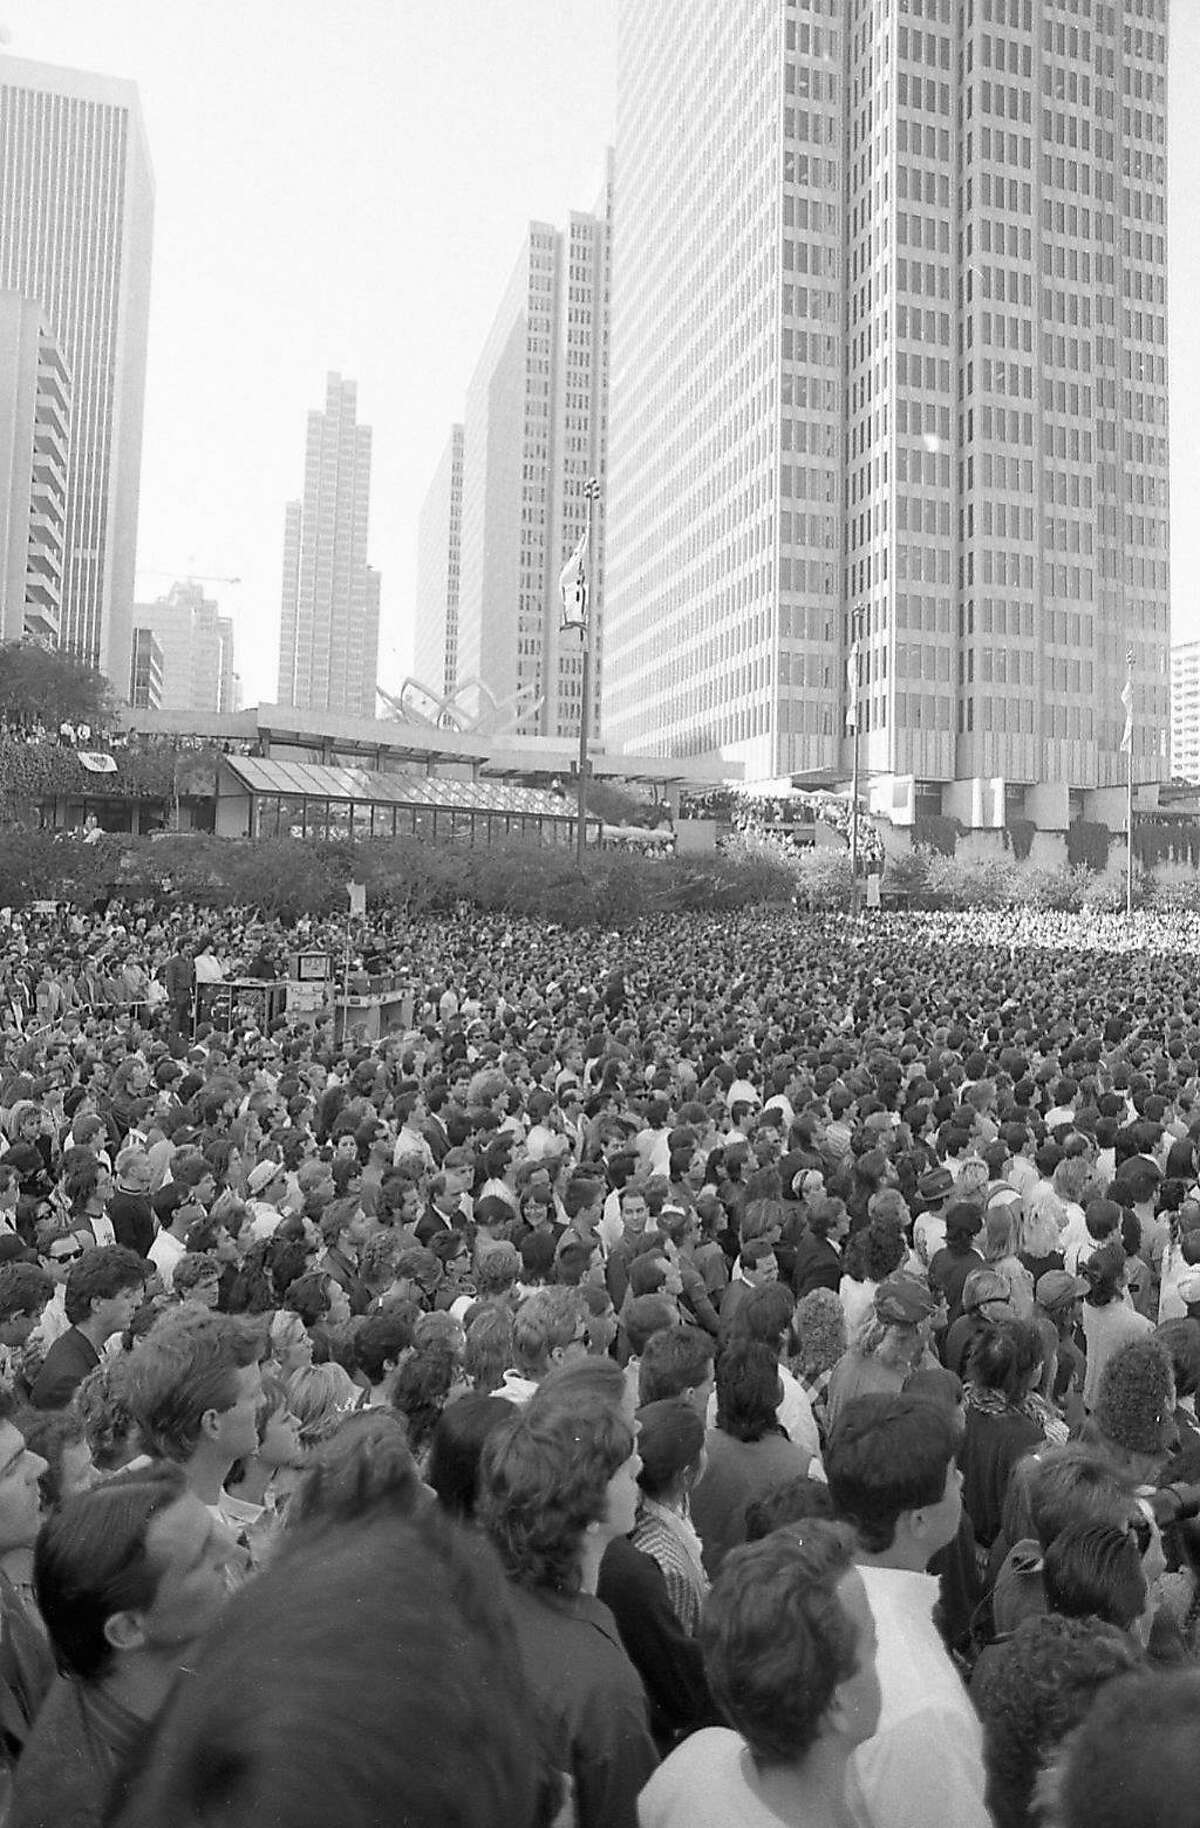 The crowd when U2 played a free concert in Justin Herman Plaza on Nov. 11, 1987.